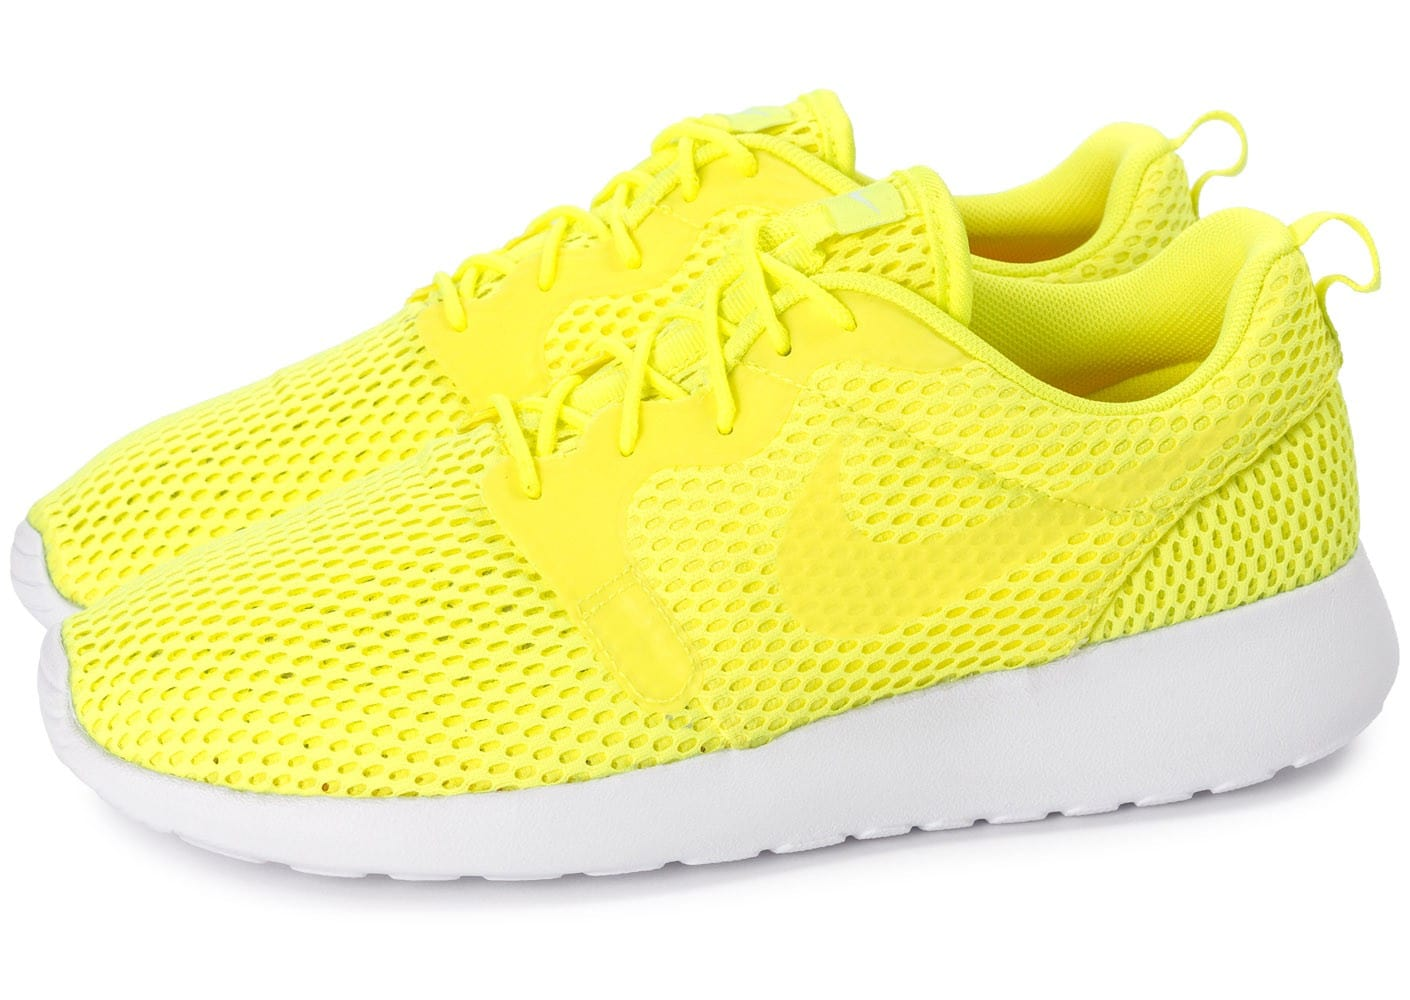 Nike Roshe One Baskets Hyperfuse Br Jaune Chaussures Baskets One Homme Chausport 2e6e2c